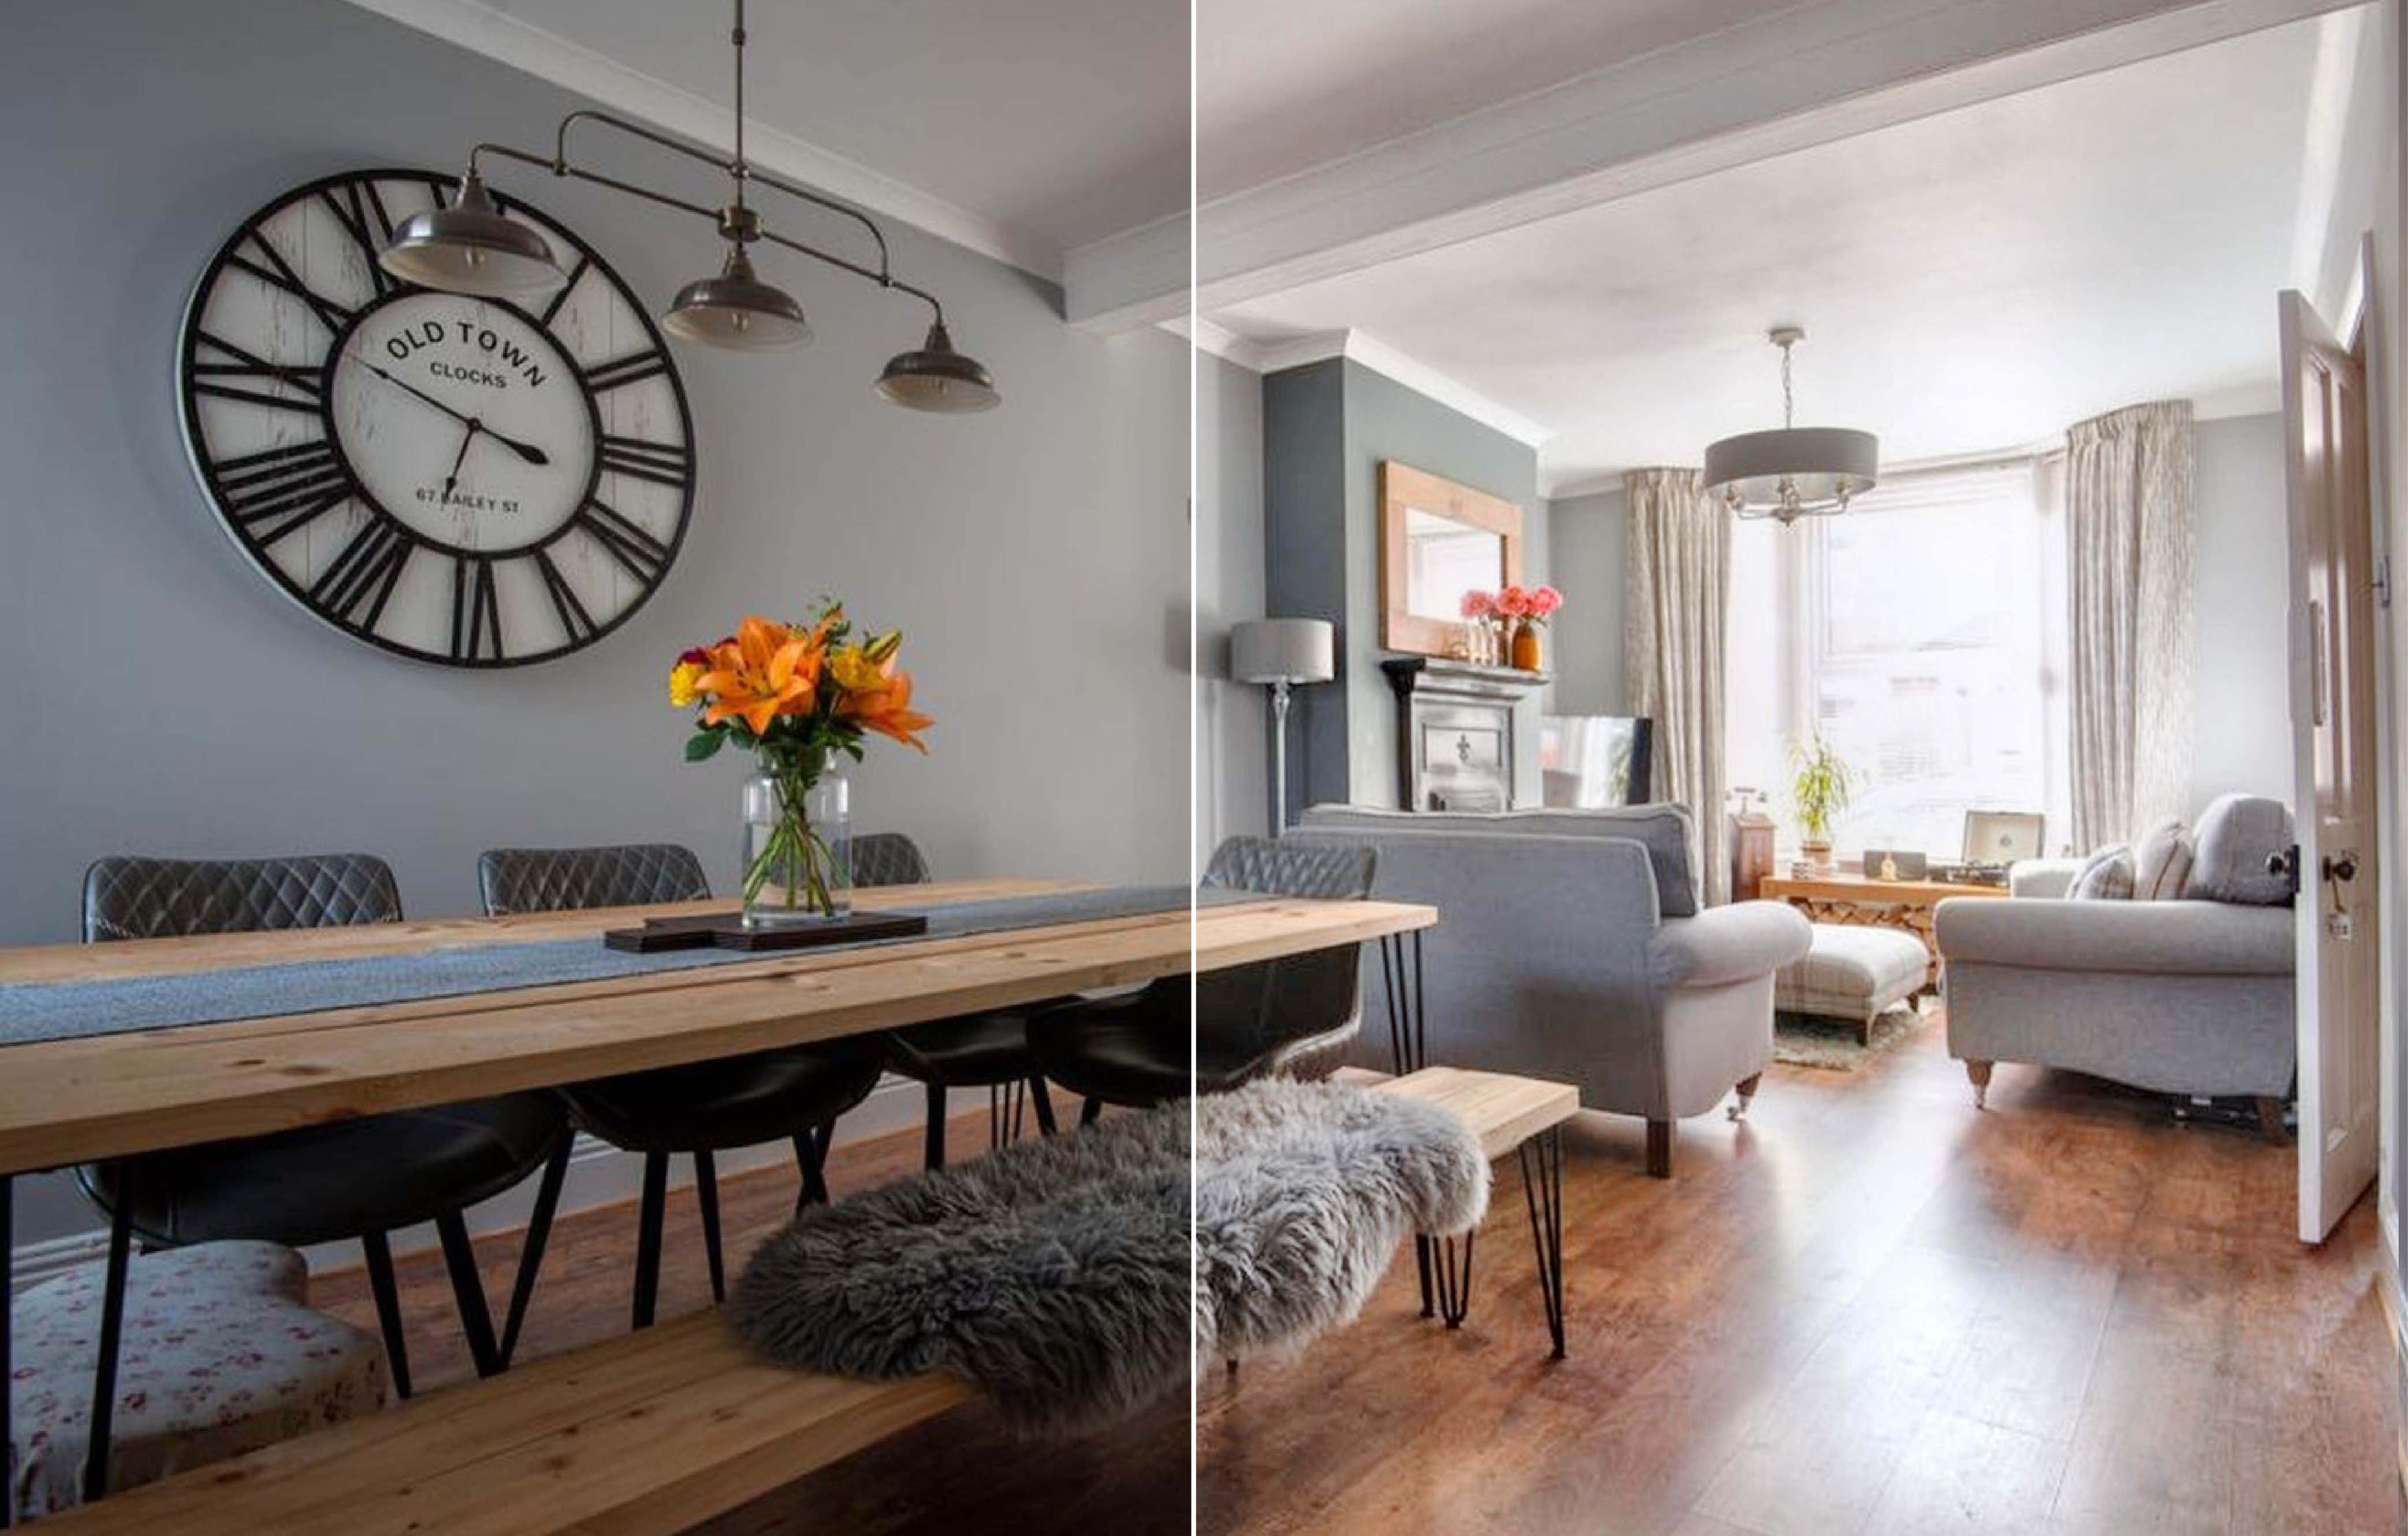 How to relight a real estate image with photo editing software